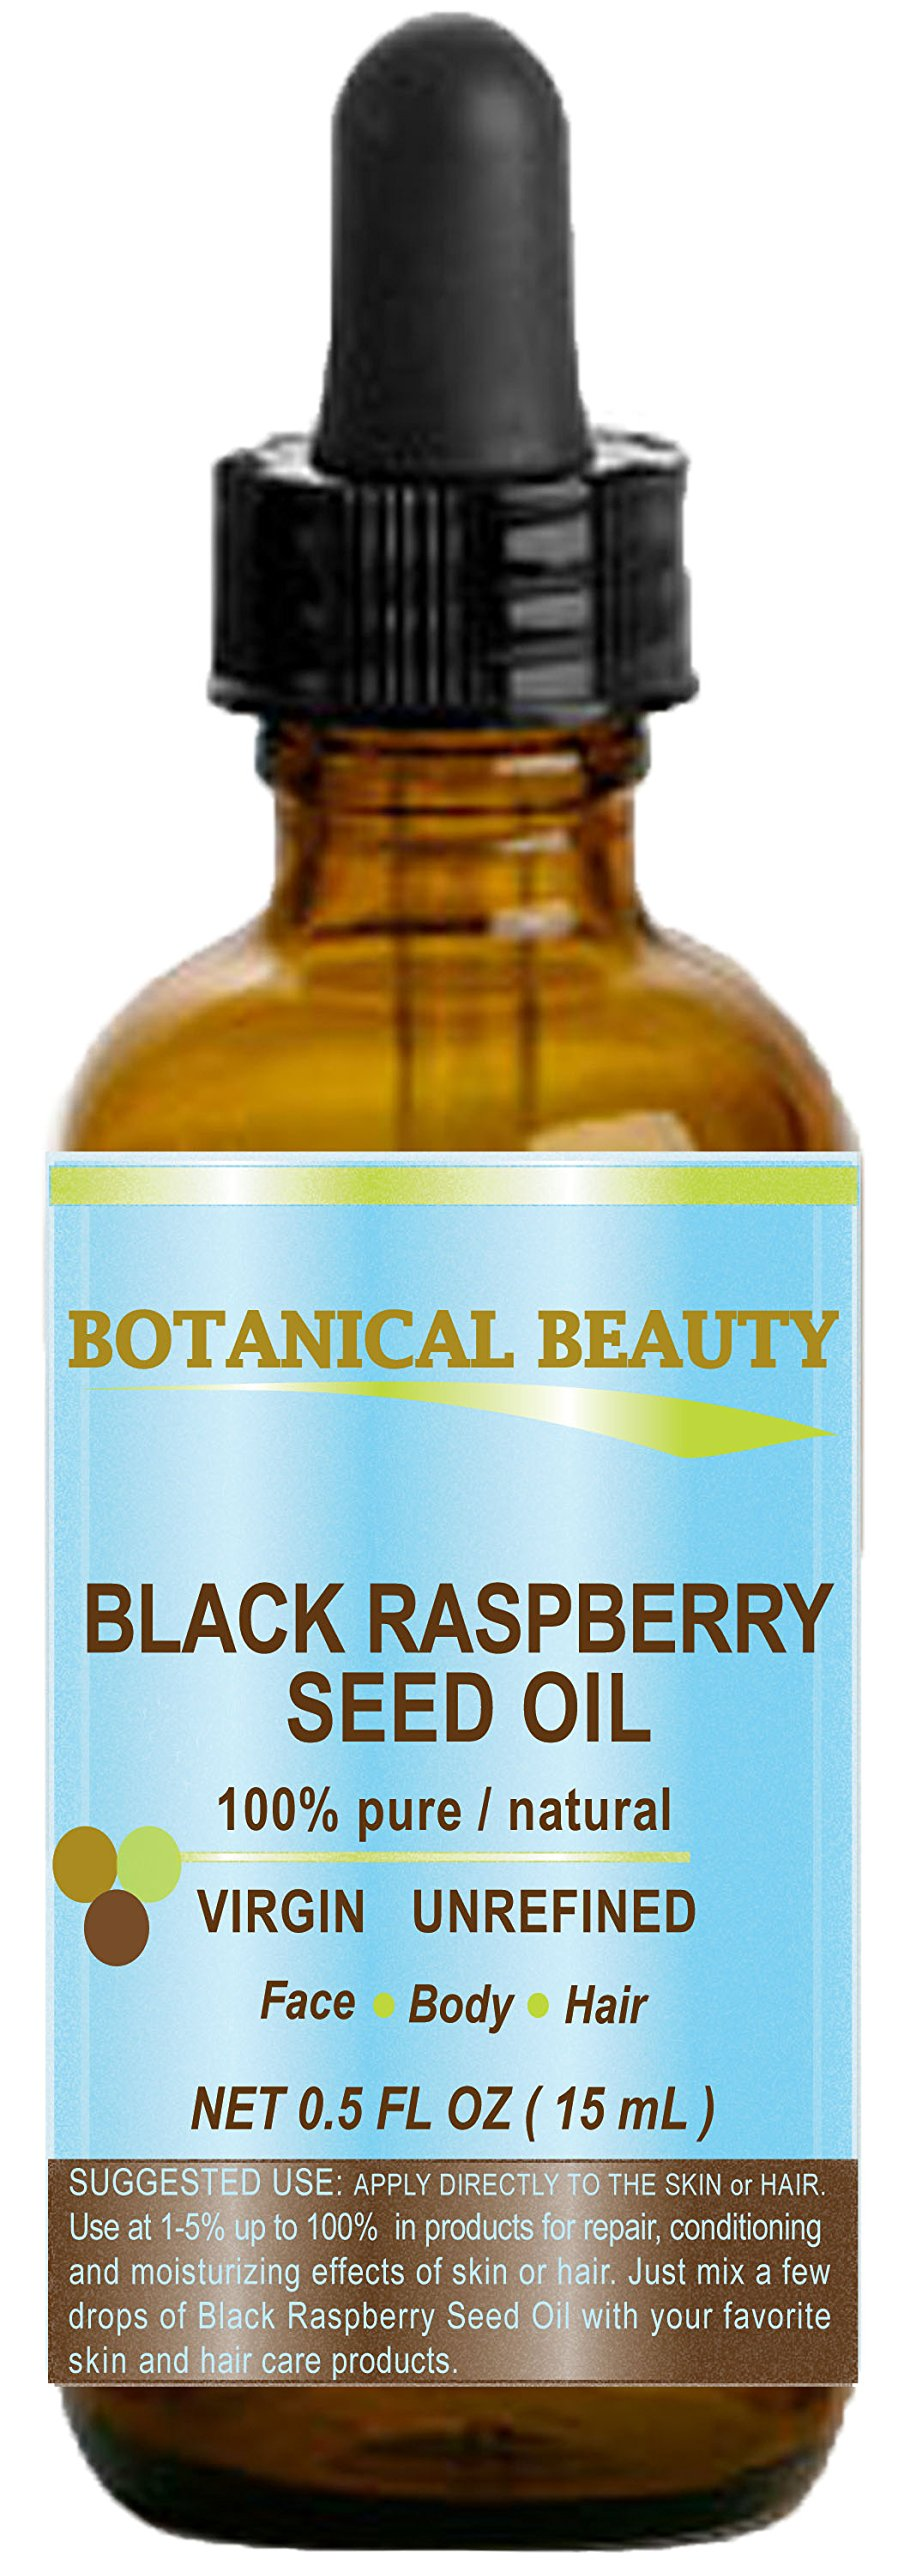 "BLACK RASPBERRY SEED OIL. 100% Pure / Natural / Undiluted / Virgin / Unrefined / Cold Pressed Carrier oil. 0.5 Fl.oz.- 15 ml. For Skin, Hair, Lip and Nail Care. ""One of the highest antioxidants, rich in vitamin A and E, Omega 3, 6 and 9 Essential Fatty Acids"". by Botanical Beauty"